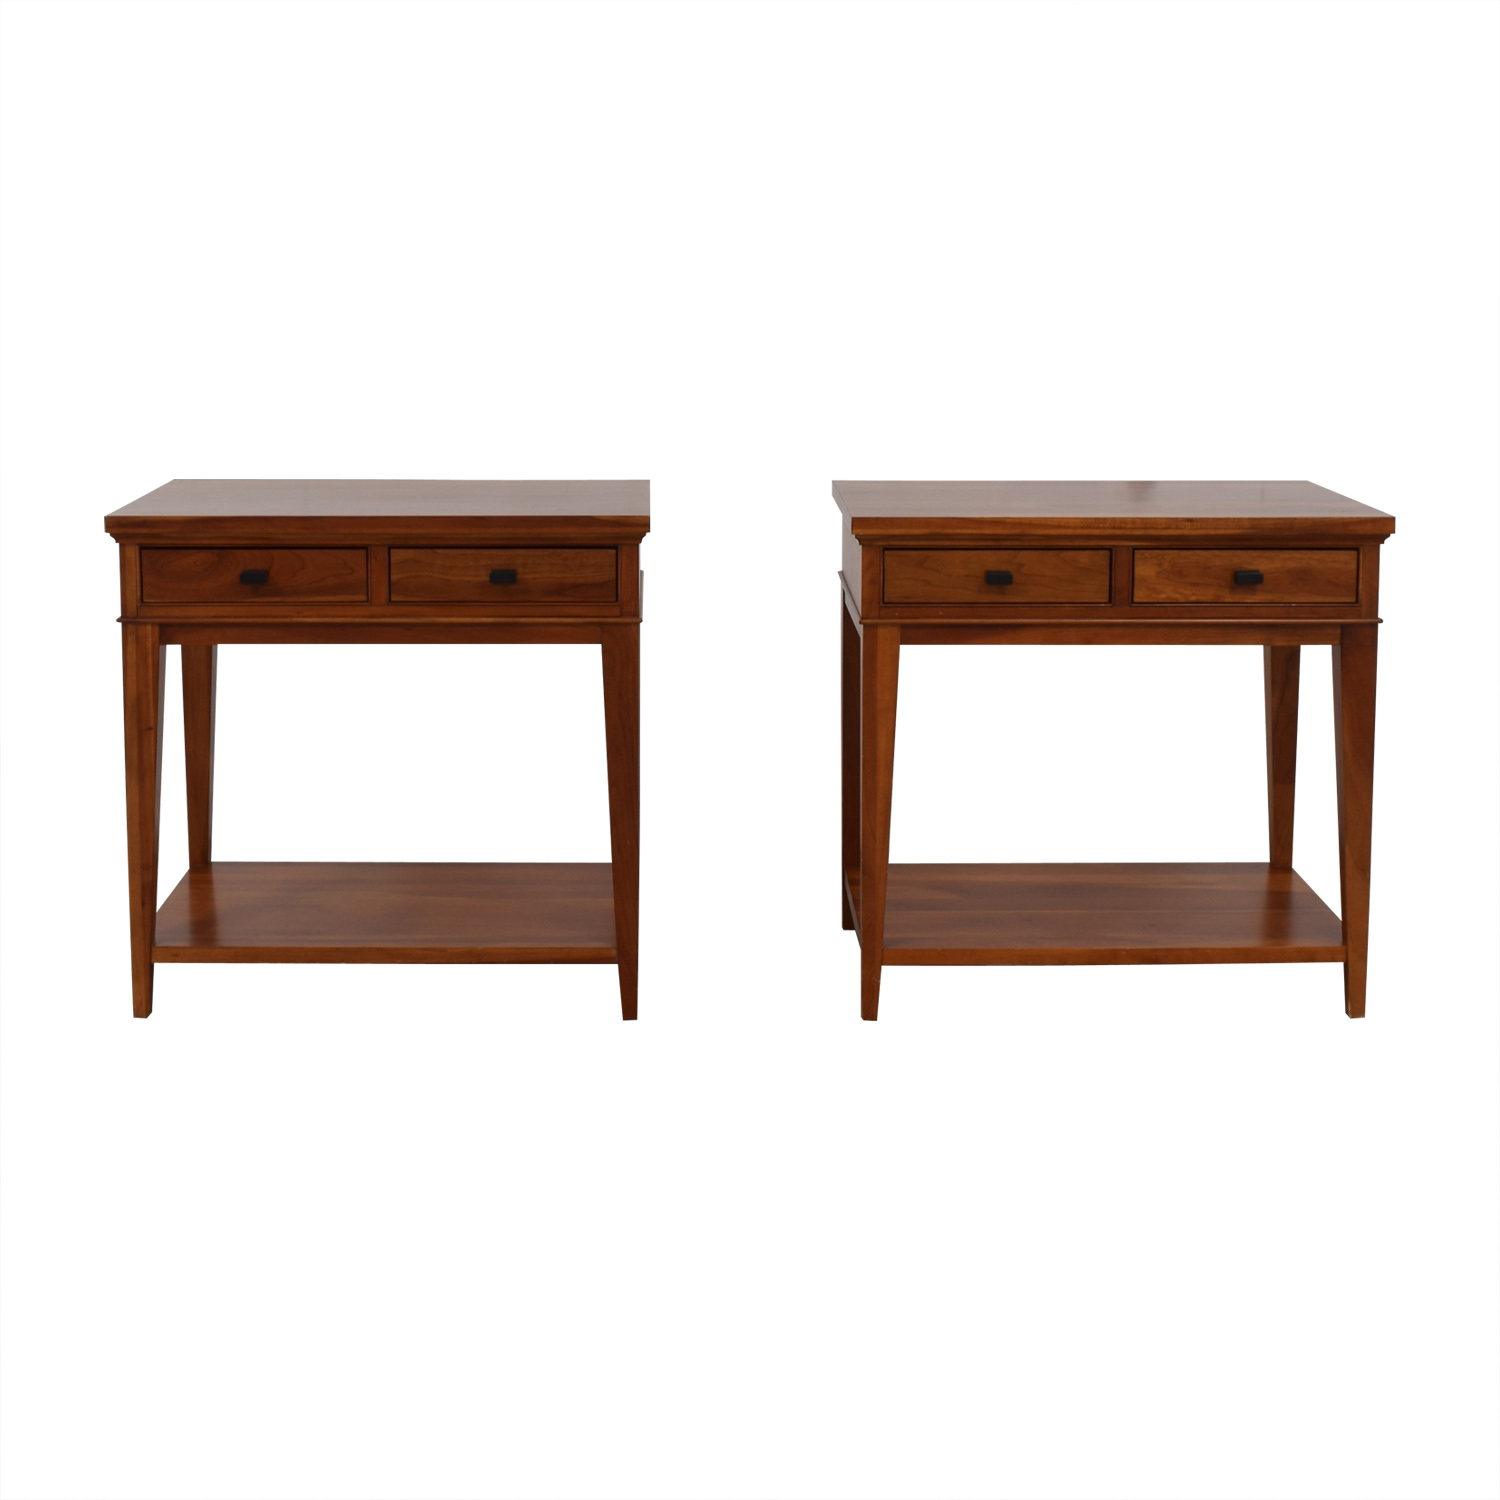 Restoration Hardware Restoration Hardware Nightstands dimensions